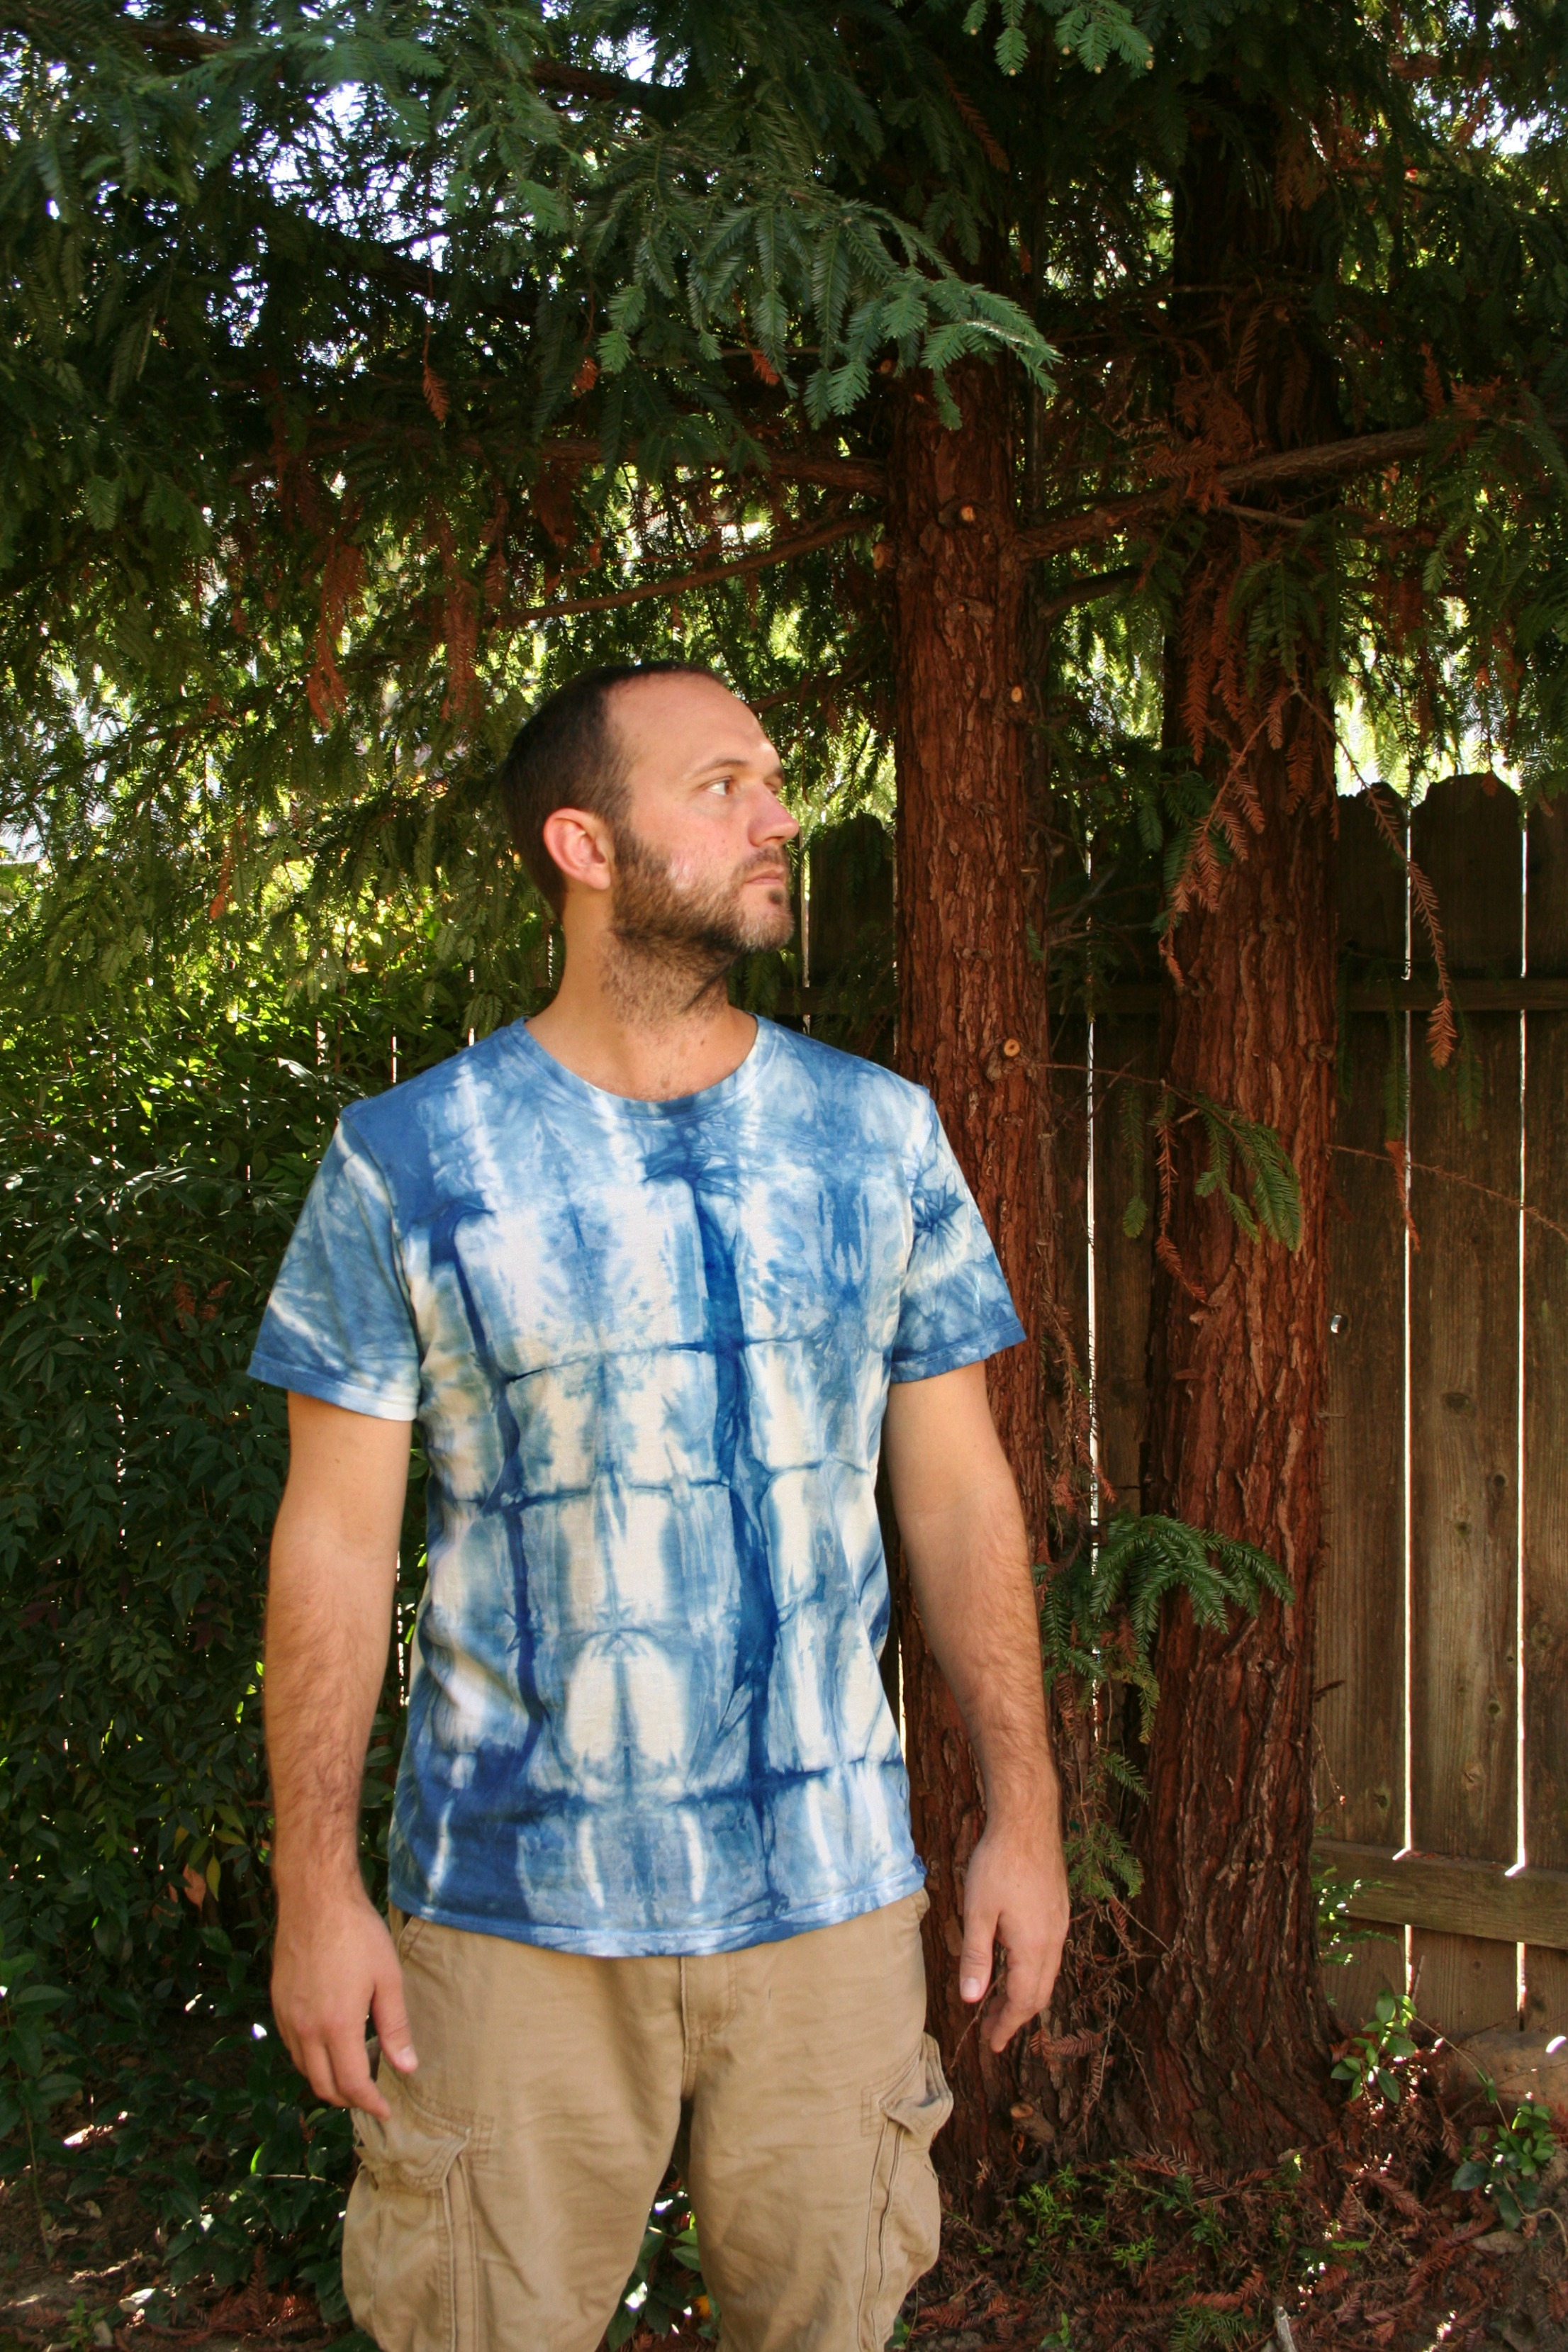 Excessively studly gentleman with shibori dyed tee shirt! Facial expression does not indicate level of satisfaction, much.